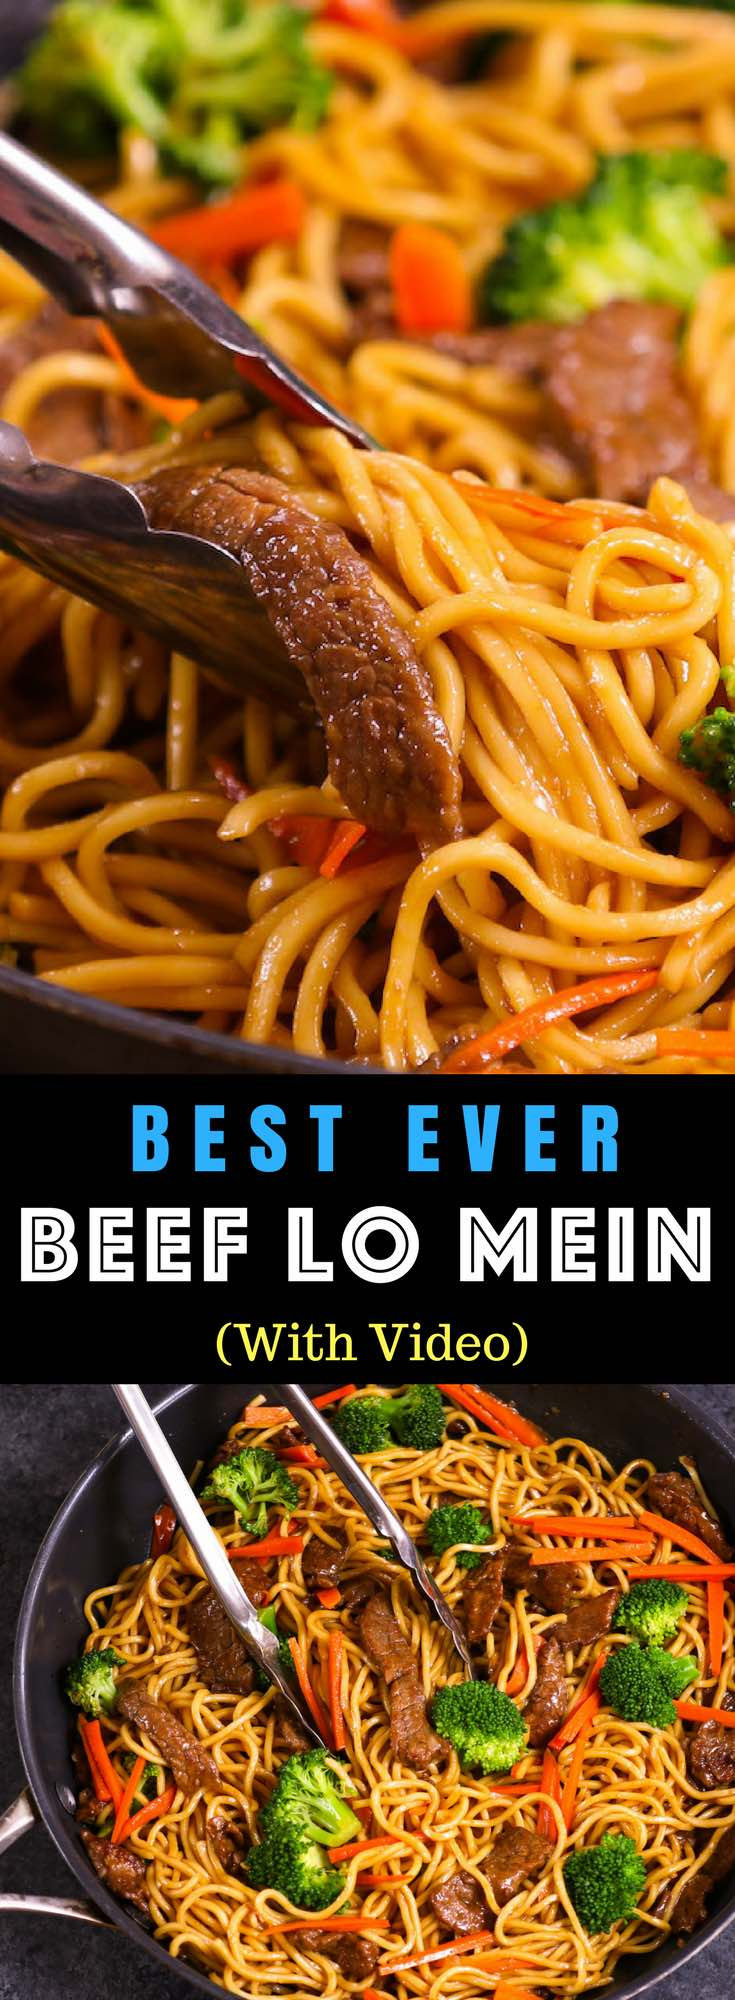 This Garlic Beef Lo Mein is a quick and easy version of classic Chinese dish. It's so much better than takeout and seriously addictive with tangy garlic and soy sauce flavors, the perfect weeknight dinner idea you can make in 20 minutes! All you need is only a few ingredients: flank steak, lo mein noodles, garlic, carrots, broccoli, sesame oil, soy sauce, hoisin sauce, ginger and brown sugar. Video recipe. | Tipbuzz.com #LoMein #BeefLoMein